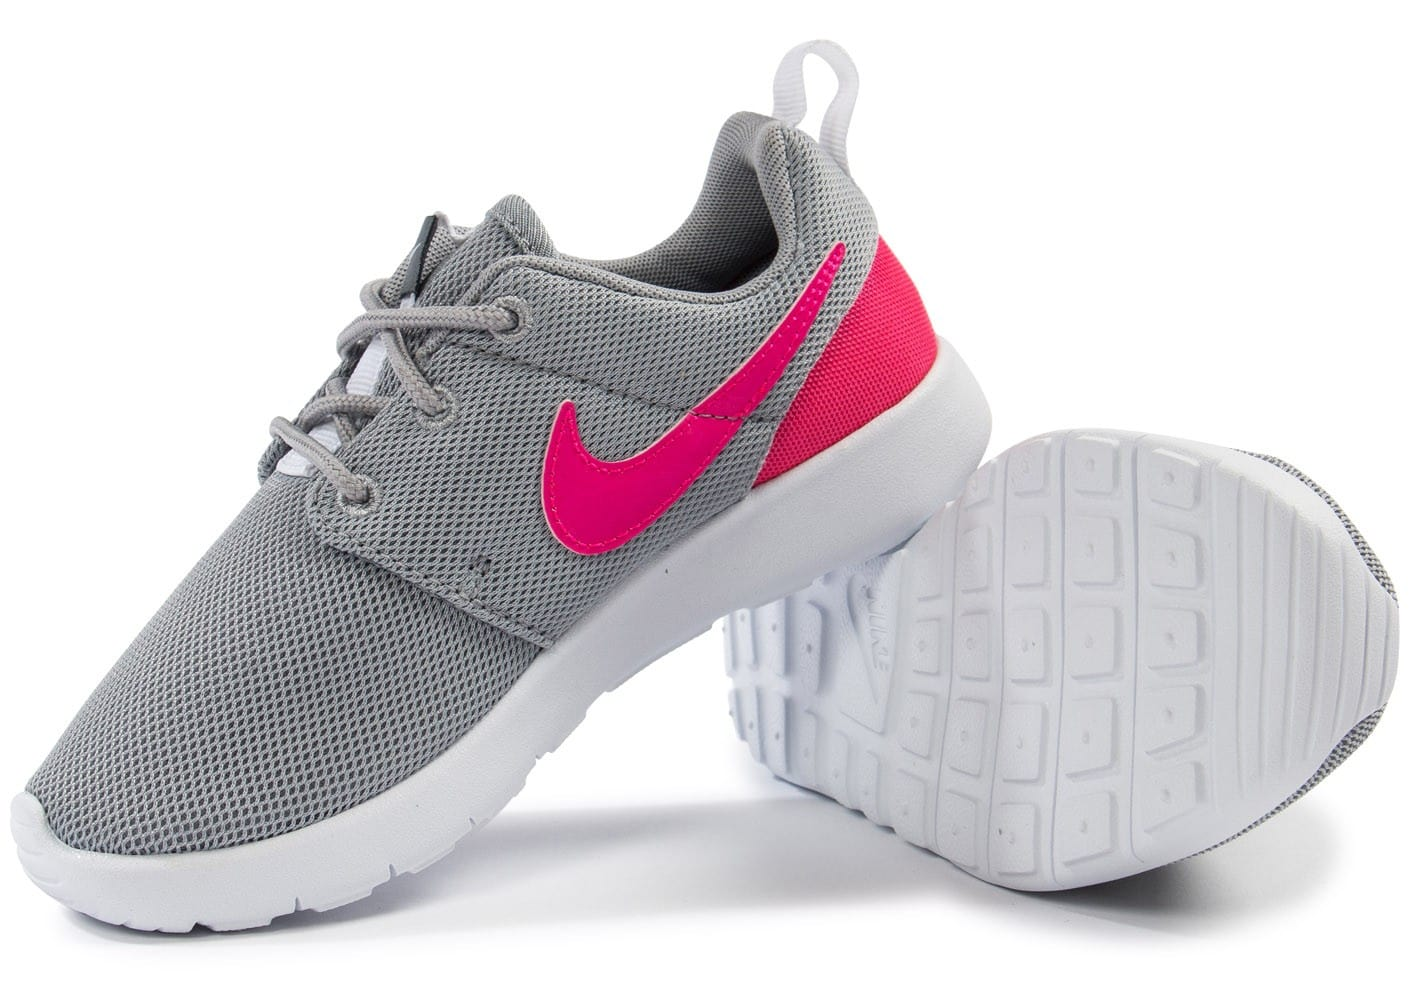 reputable site 47ad2 b59c2 ... Chaussures Nike Roshe One Enfant grise et rose vue intérieure ...